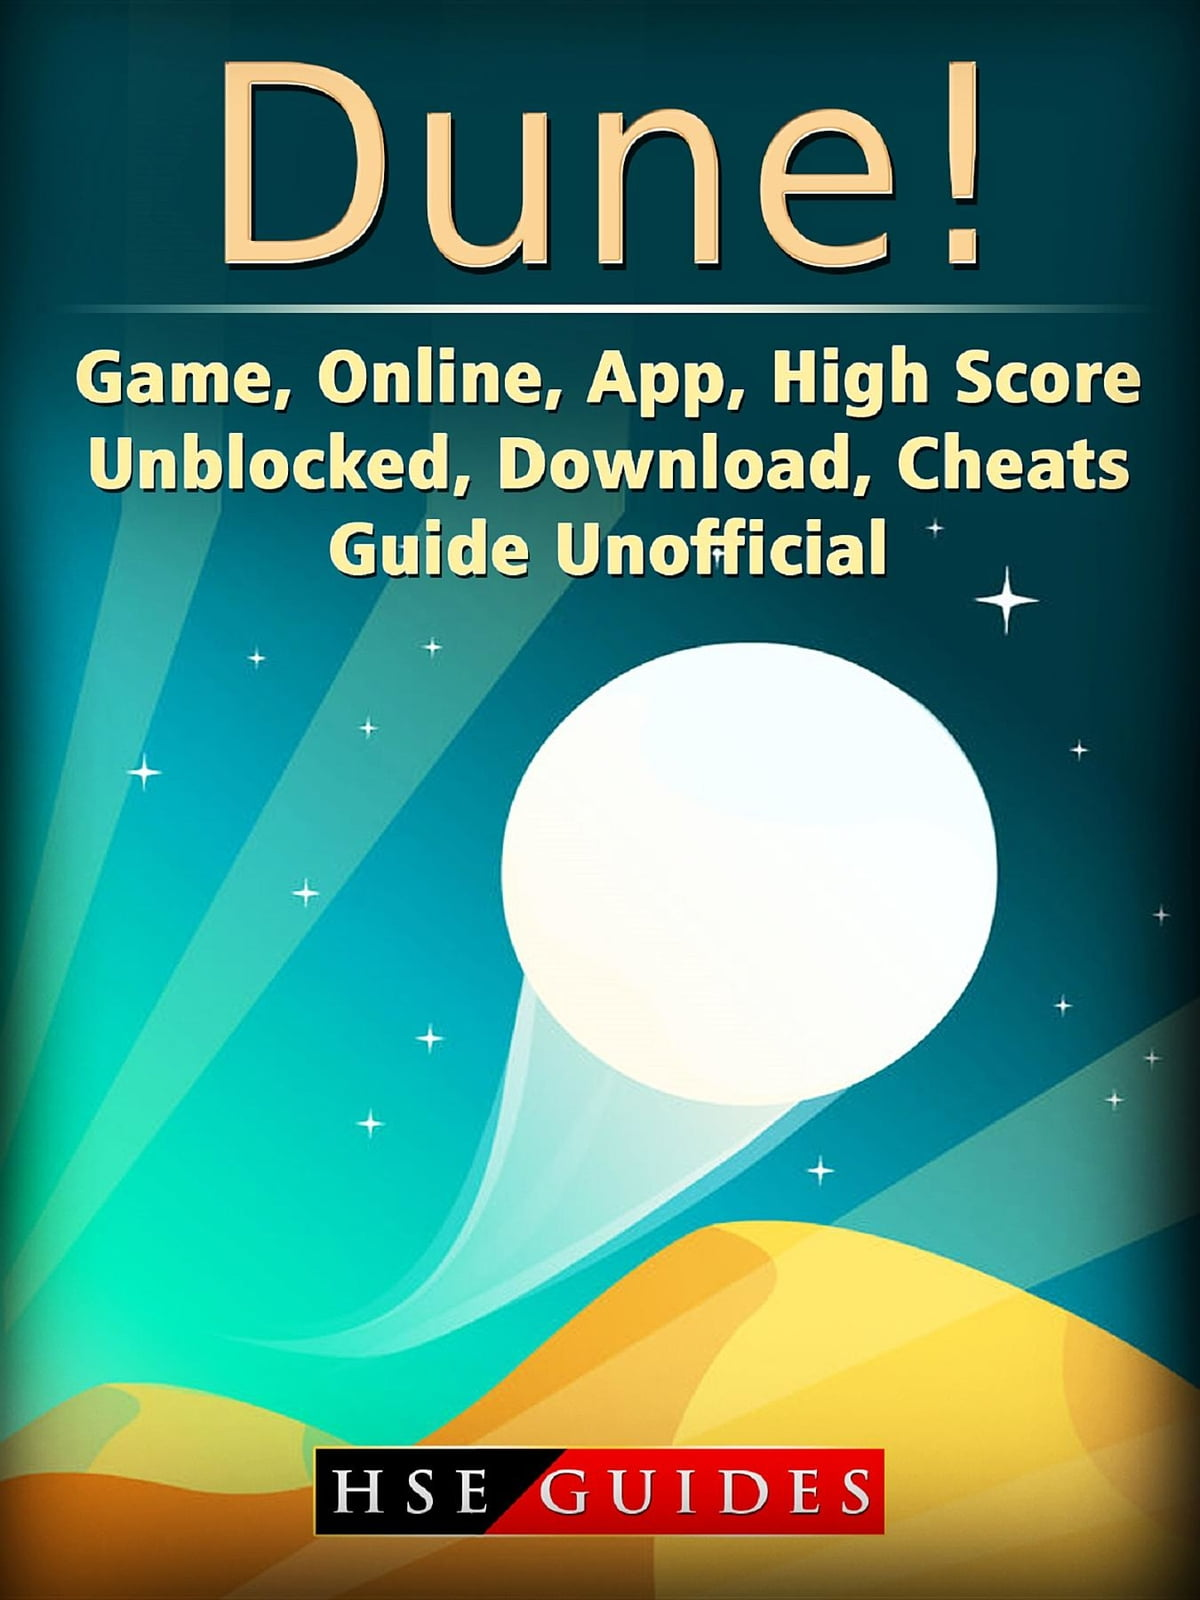 Dune! Game, Online, App, High Score, Unblocked, Download, Cheats, Guide  Unofficial ebook by HSE Guides - Rakuten Kobo